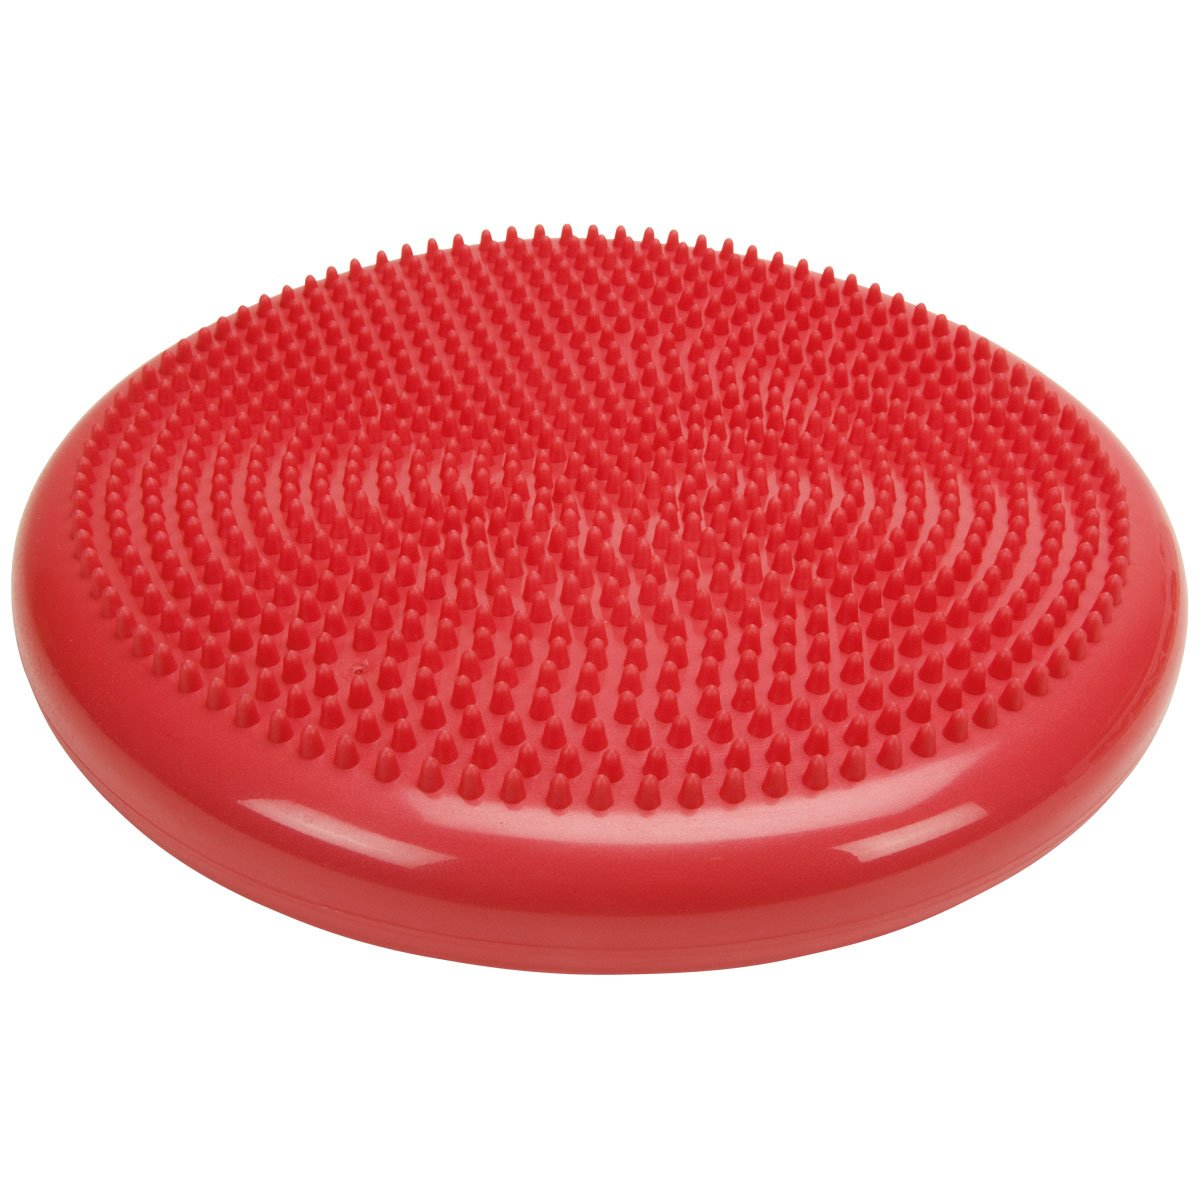 Cando 30-1870R Red Inflatable Vestibular Disc